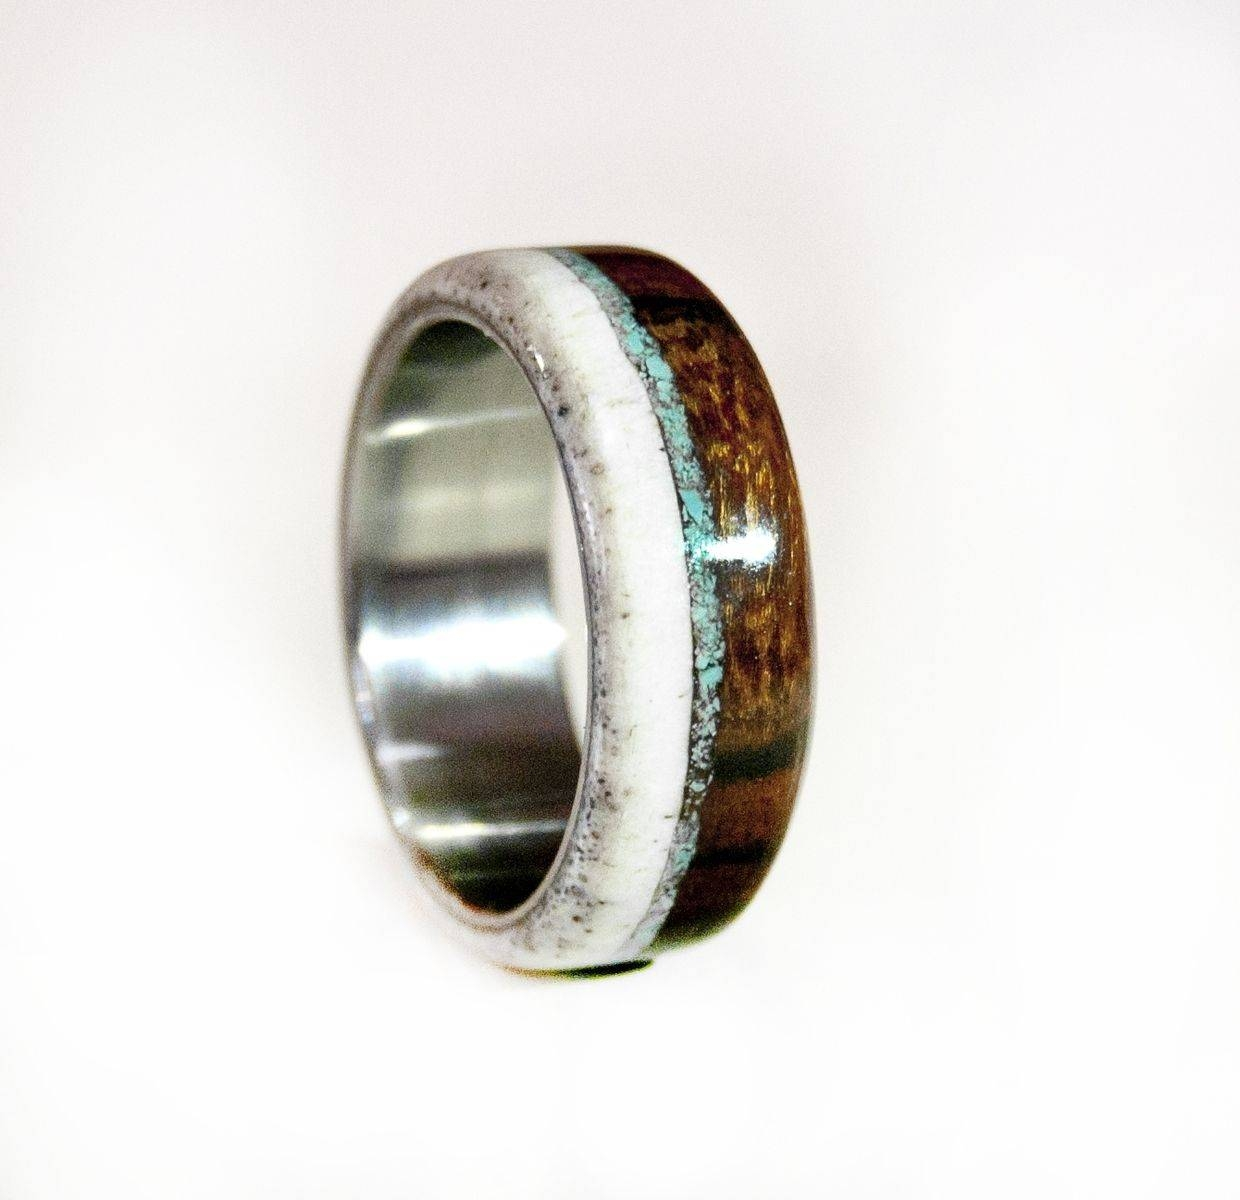 Hand Made Mens Wedding Band Wood And Antler With Turquoise And Throughout Antler Wedding Bands (View 9 of 15)